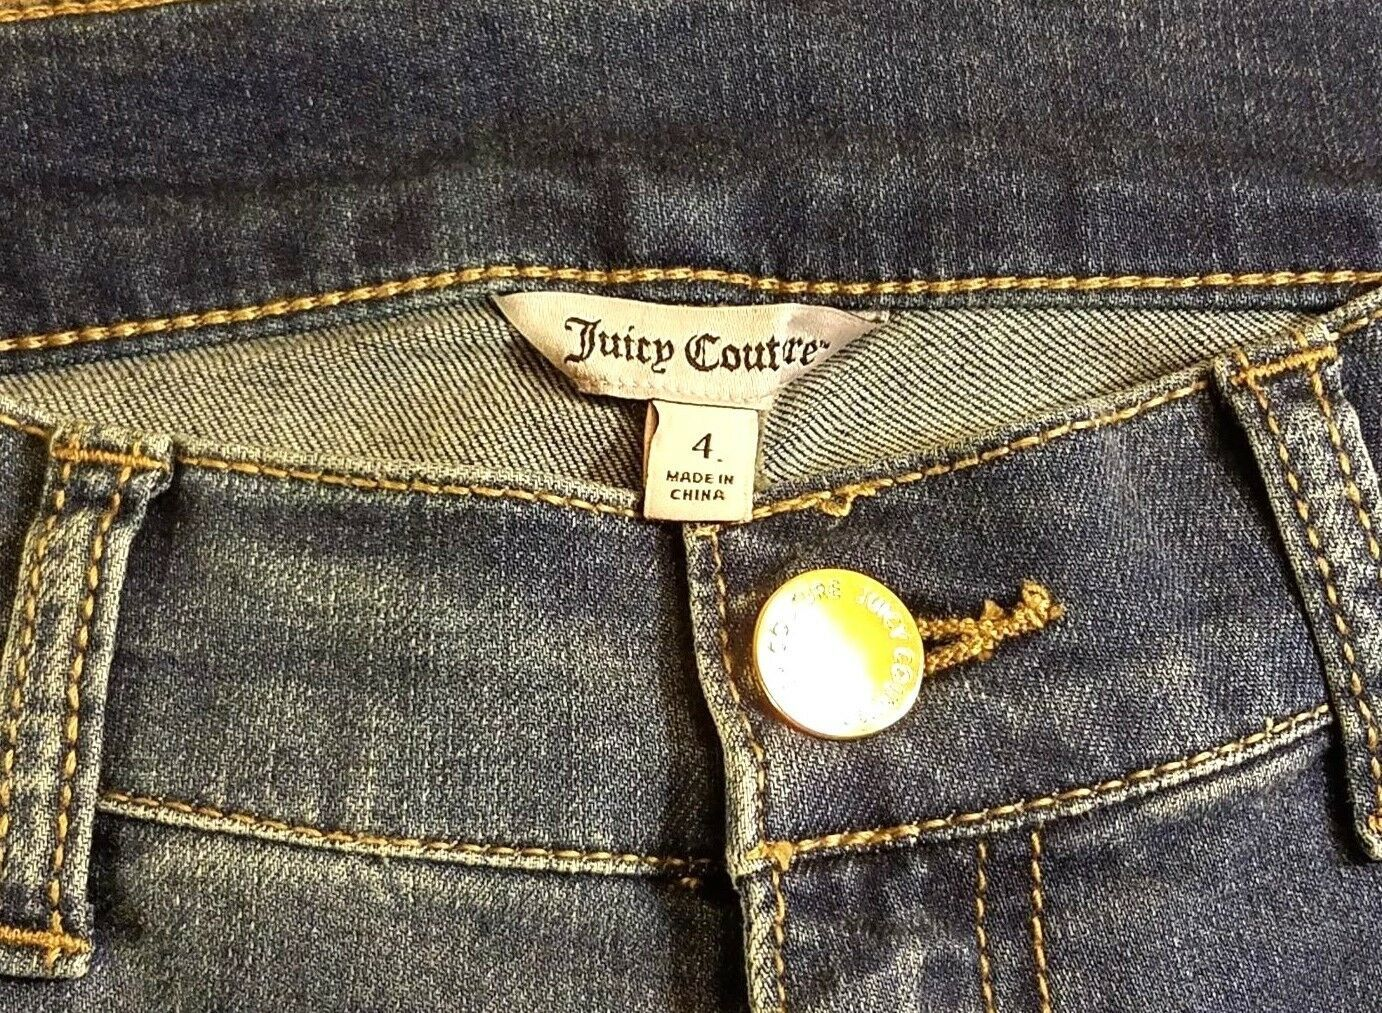 Nwt Juicy Couture Rolle Manschette Denim Röhrenjeans - Dunkle Waschung - Us 4 image 3